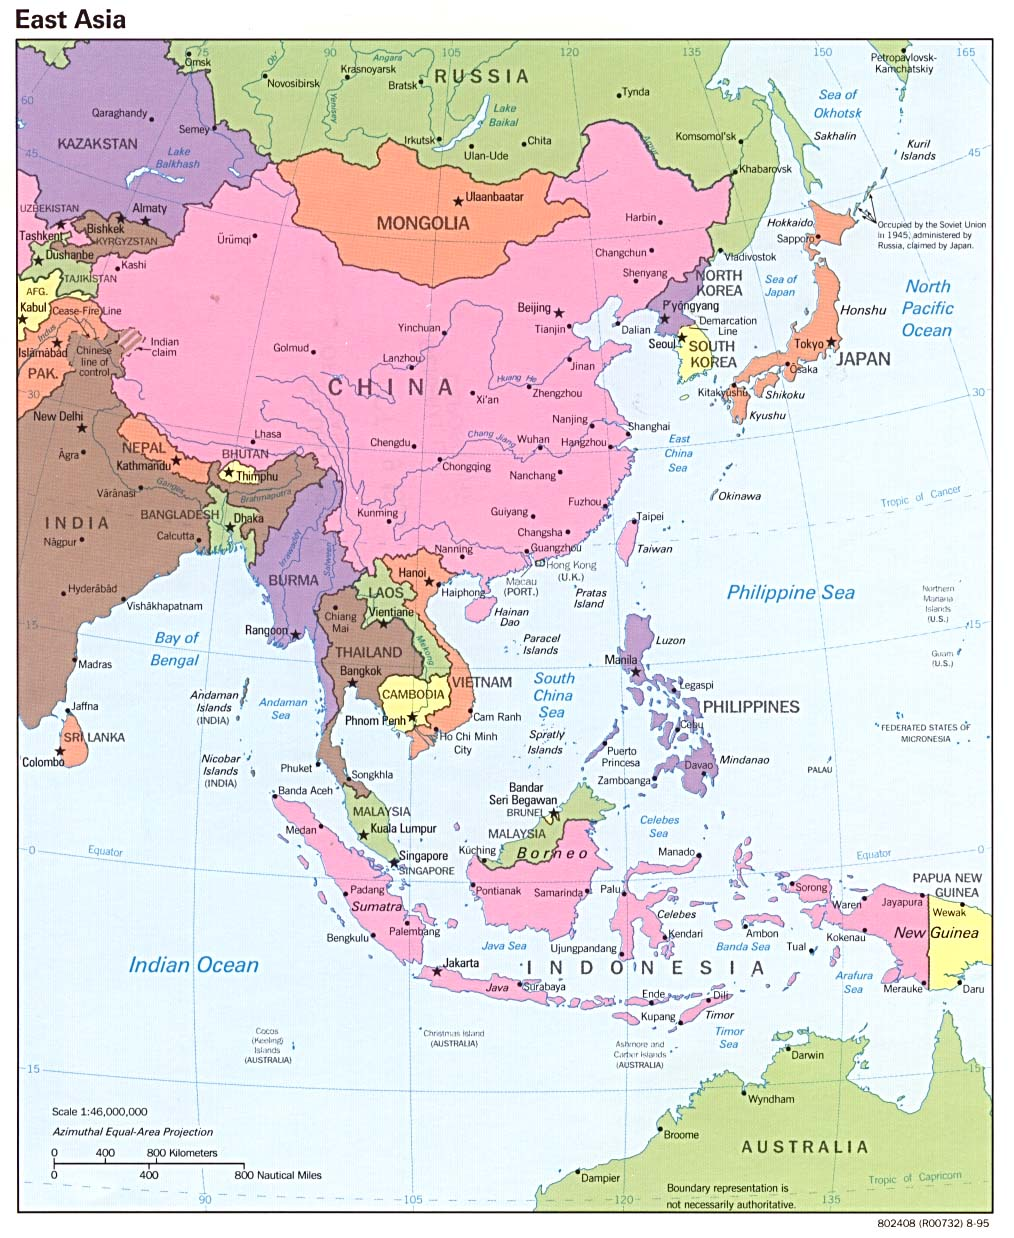 Picture of: East Asia In Geographic Perspective Asia For Educators Columbia University